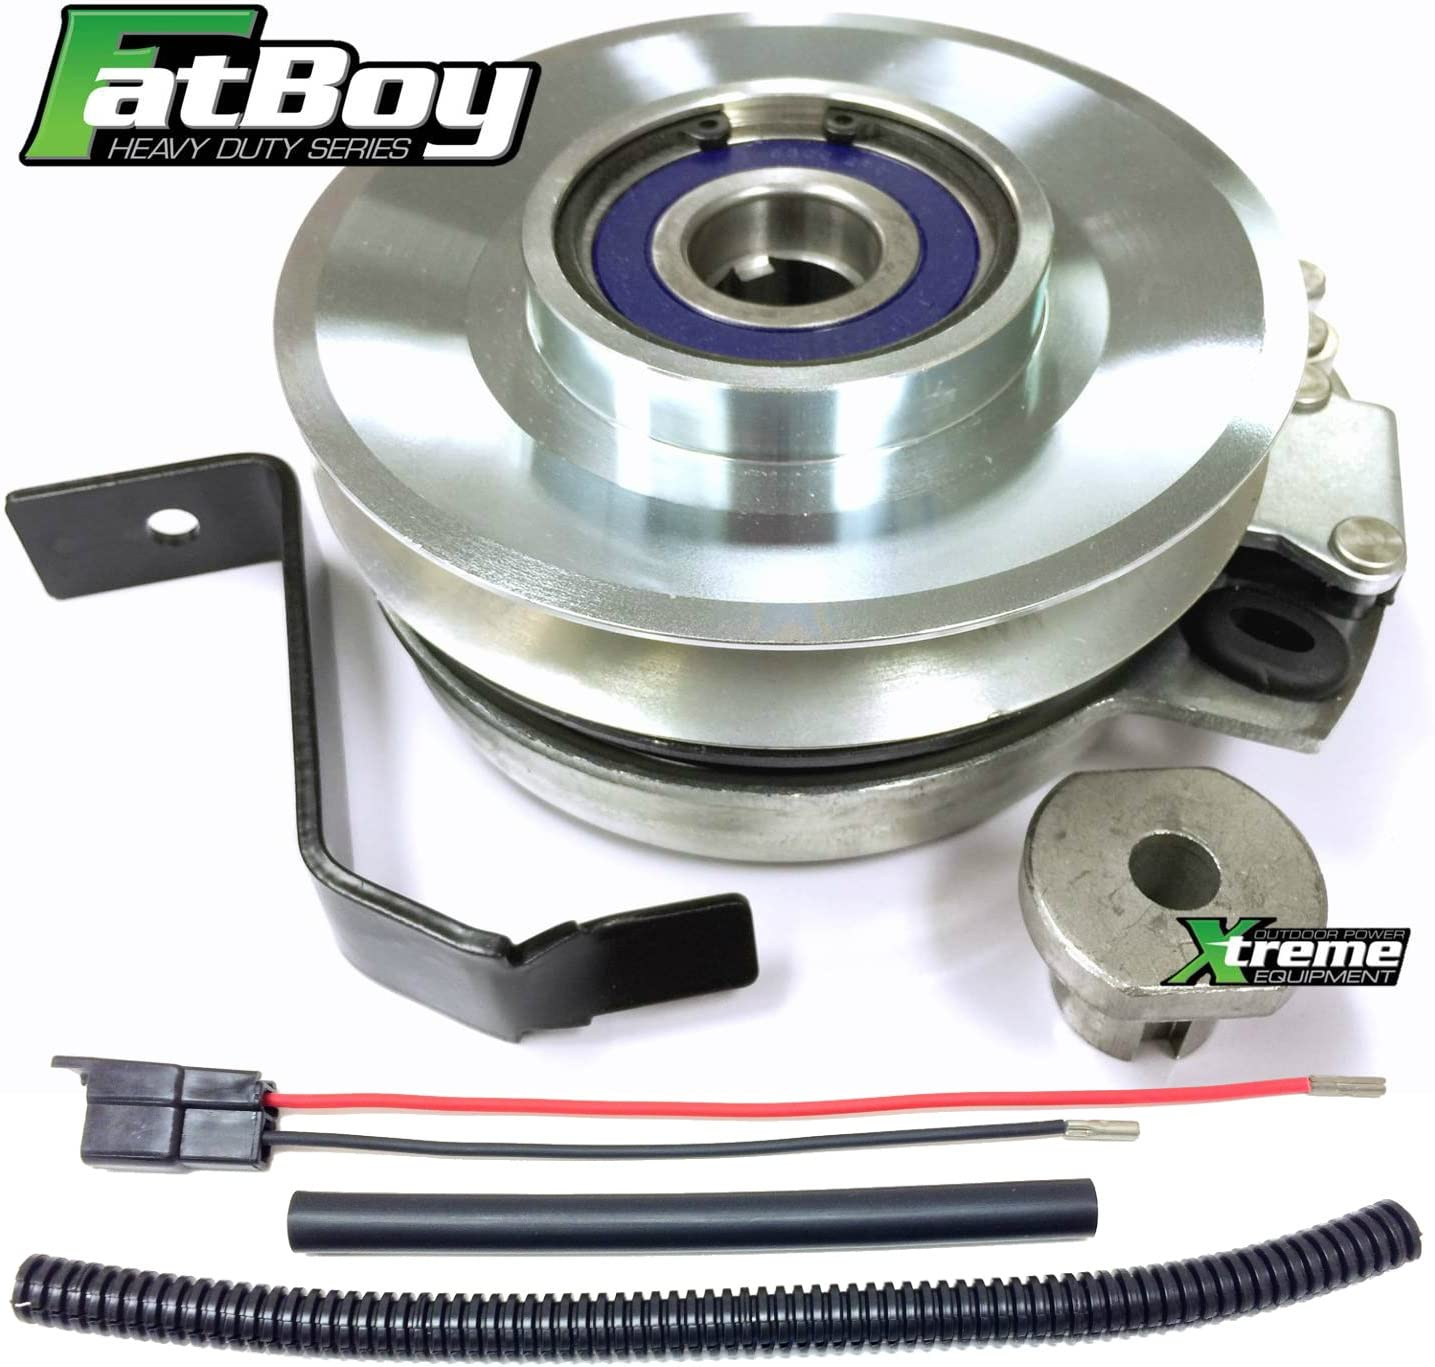 [XOTG_4463]  Amazon.com : Bundle - 2 items: PTO Electric Blade Clutch, Wire Harness  Repair Kit. Replaces John Deere PTO Clutch 145, 155C, 190C L120 L130 LA130  140 145 150 155 165 175 D140-D170 Mower, GY20878, Bearing Upgrade! : Garden  & Outdoor | John Deere 155c Wiring Diagram Clutch |  | Amazon.com